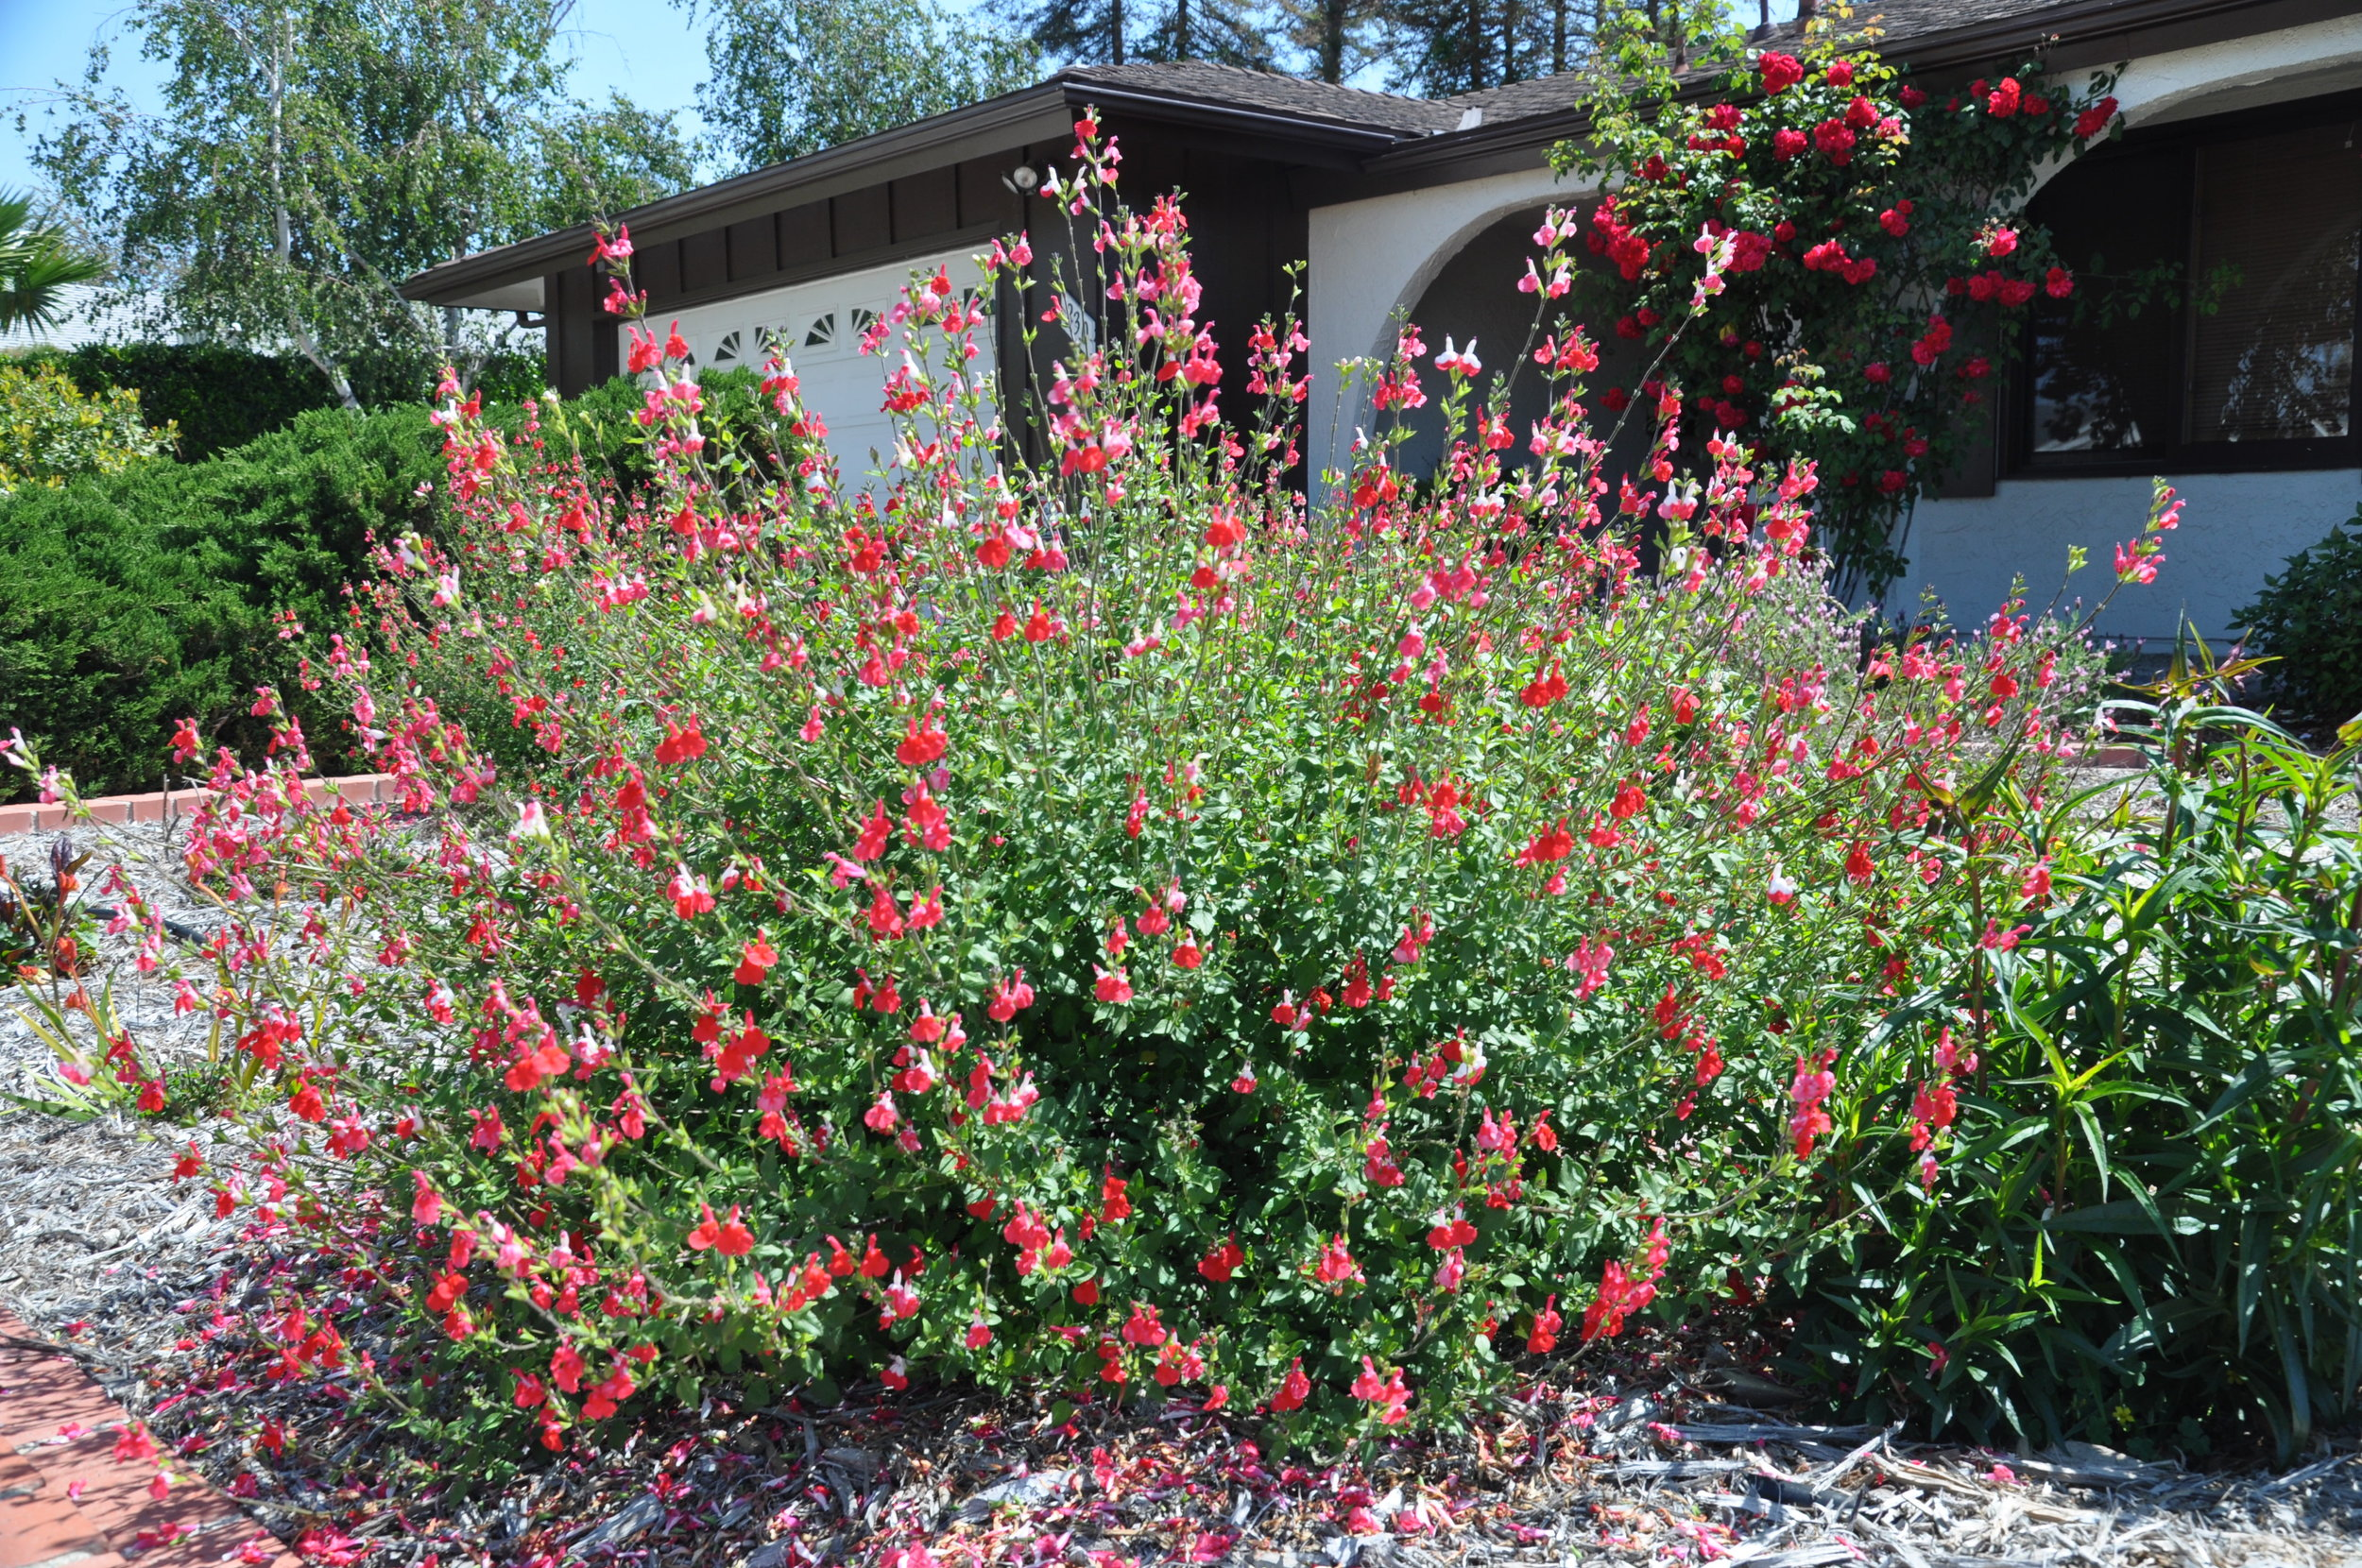 Salvia microphylla 'Hot Lips' -  Small Shrub  ⬈ Reaching a height of 2-3' and a width of 2-3' ☀ Full Sun ☂ Low  A mounding shrub with two-toned flowers backed by very fine green foliage. The blooms appear continuously from summer until fall.